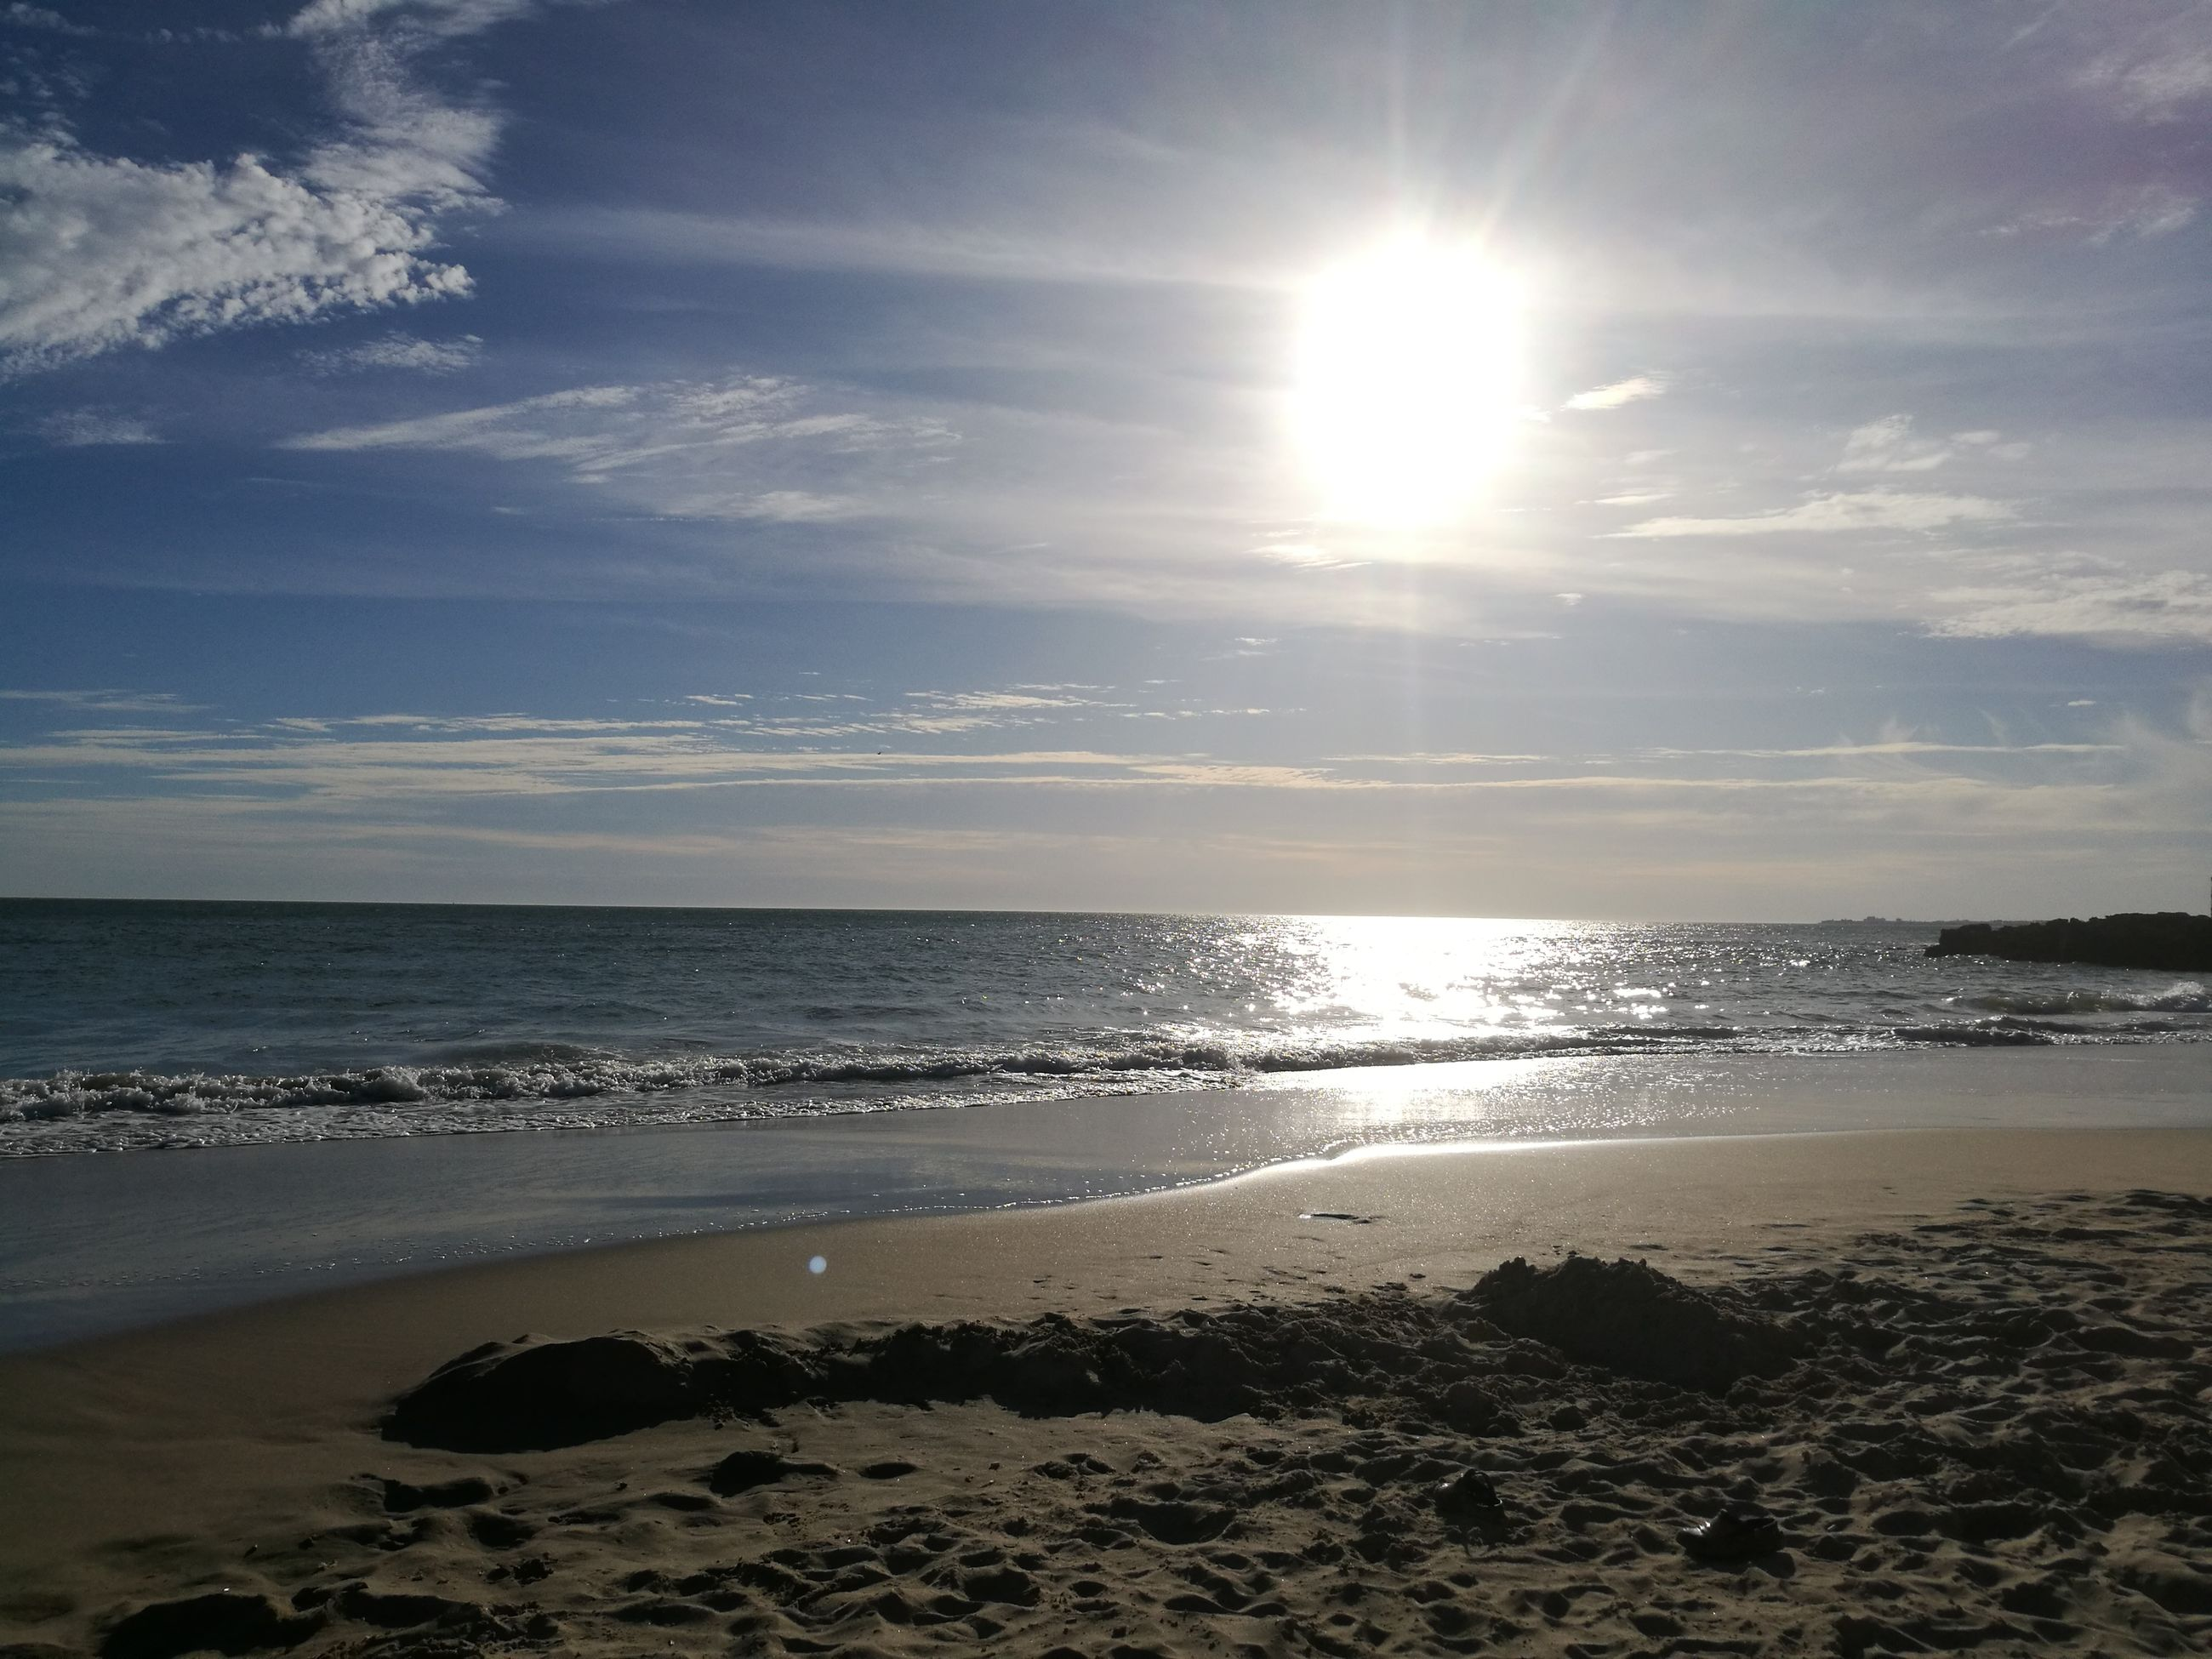 sea, beach, sunlight, sun, water, sand, horizon over water, scenics, nature, beauty in nature, sky, shore, sunbeam, tranquility, tranquil scene, sunset, no people, outdoors, wave, day